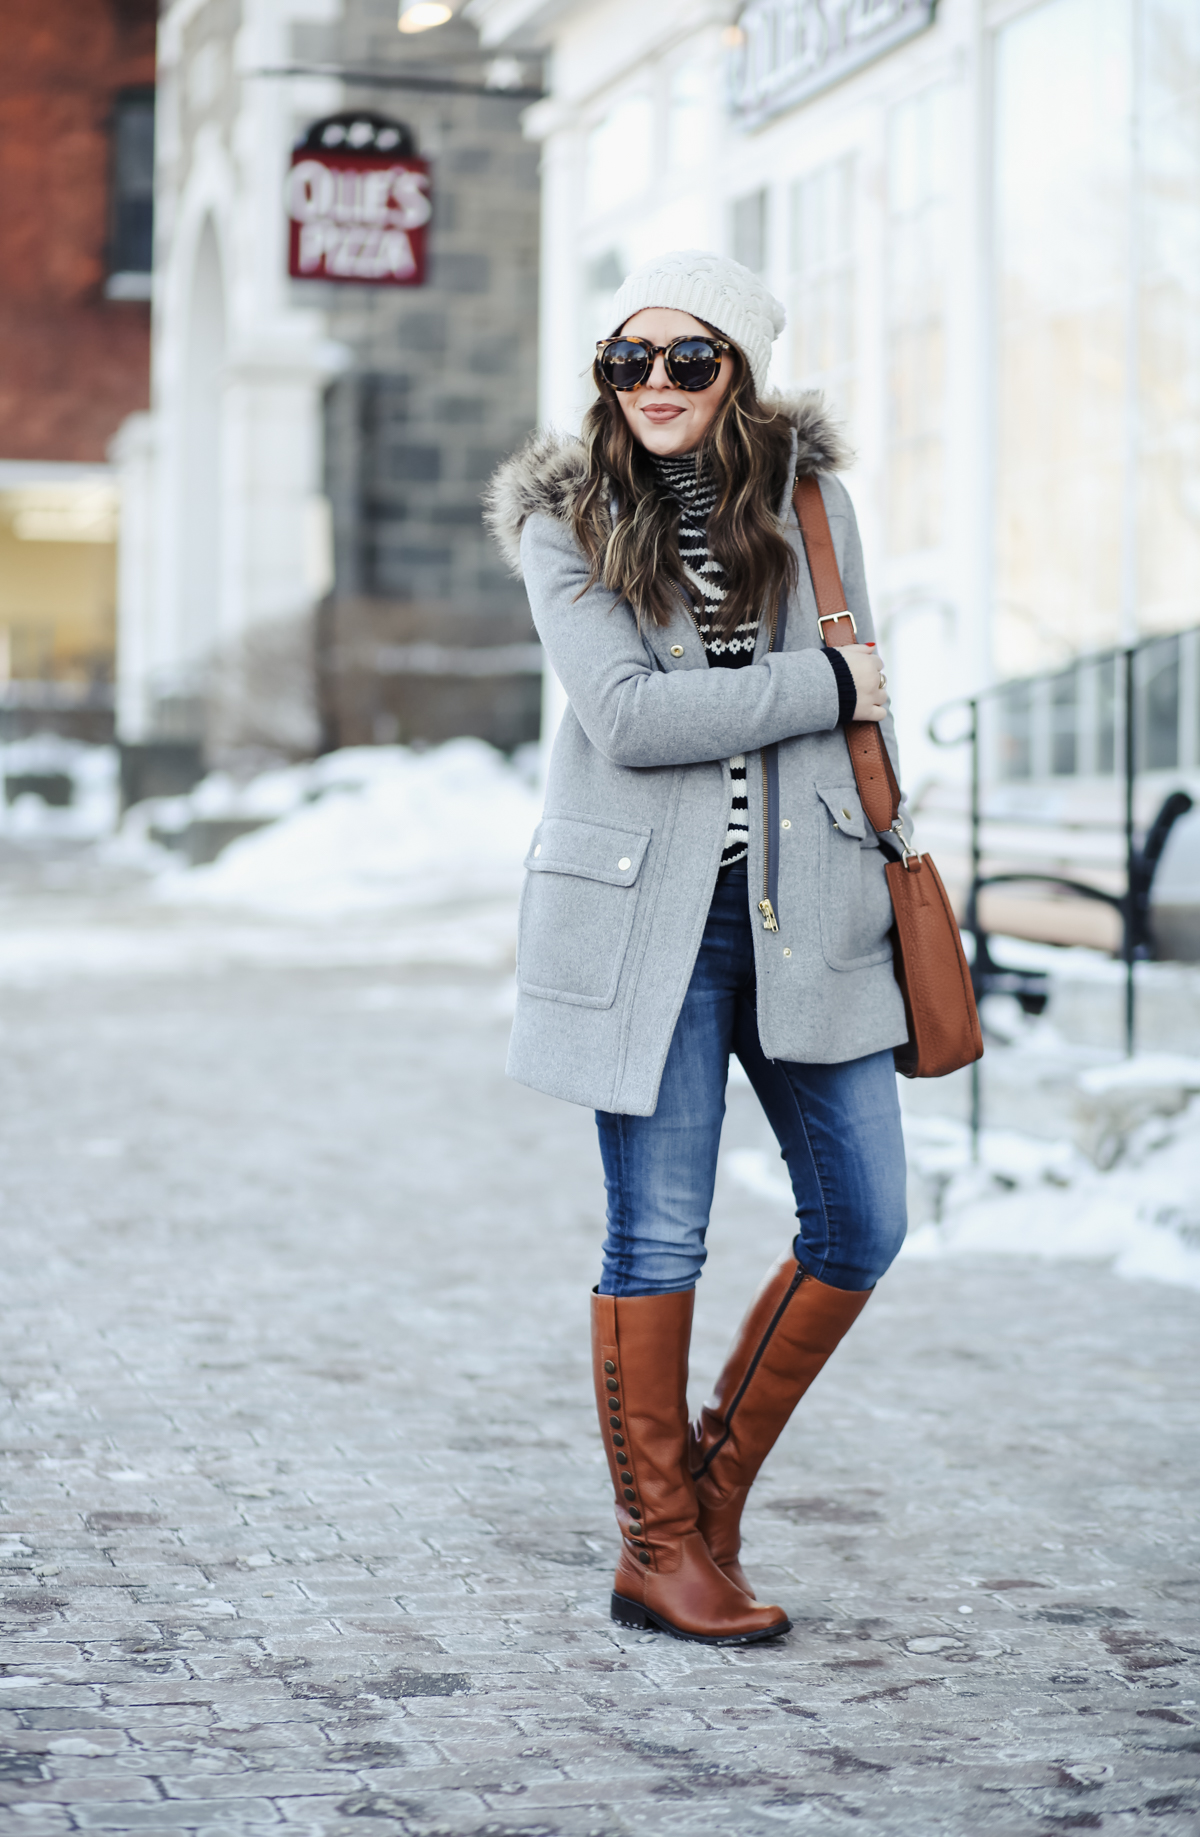 Winter Outfit With Riding Boots And Wool Coat 1 Dress